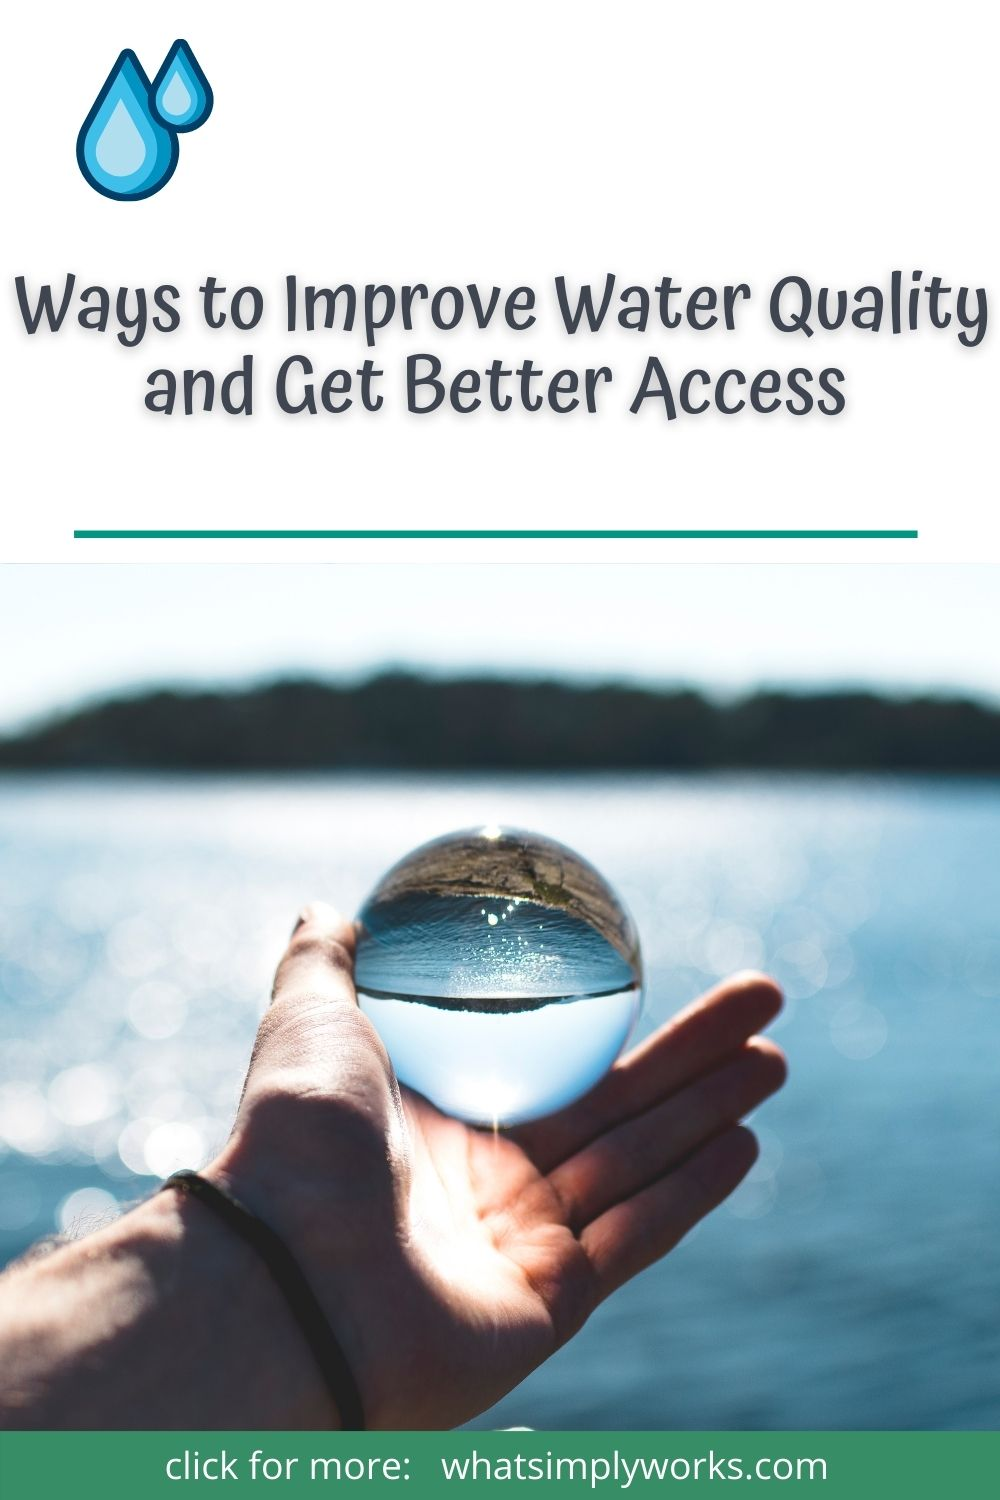 4 Top Ways to Improve Water Quality and Get Better Access to It